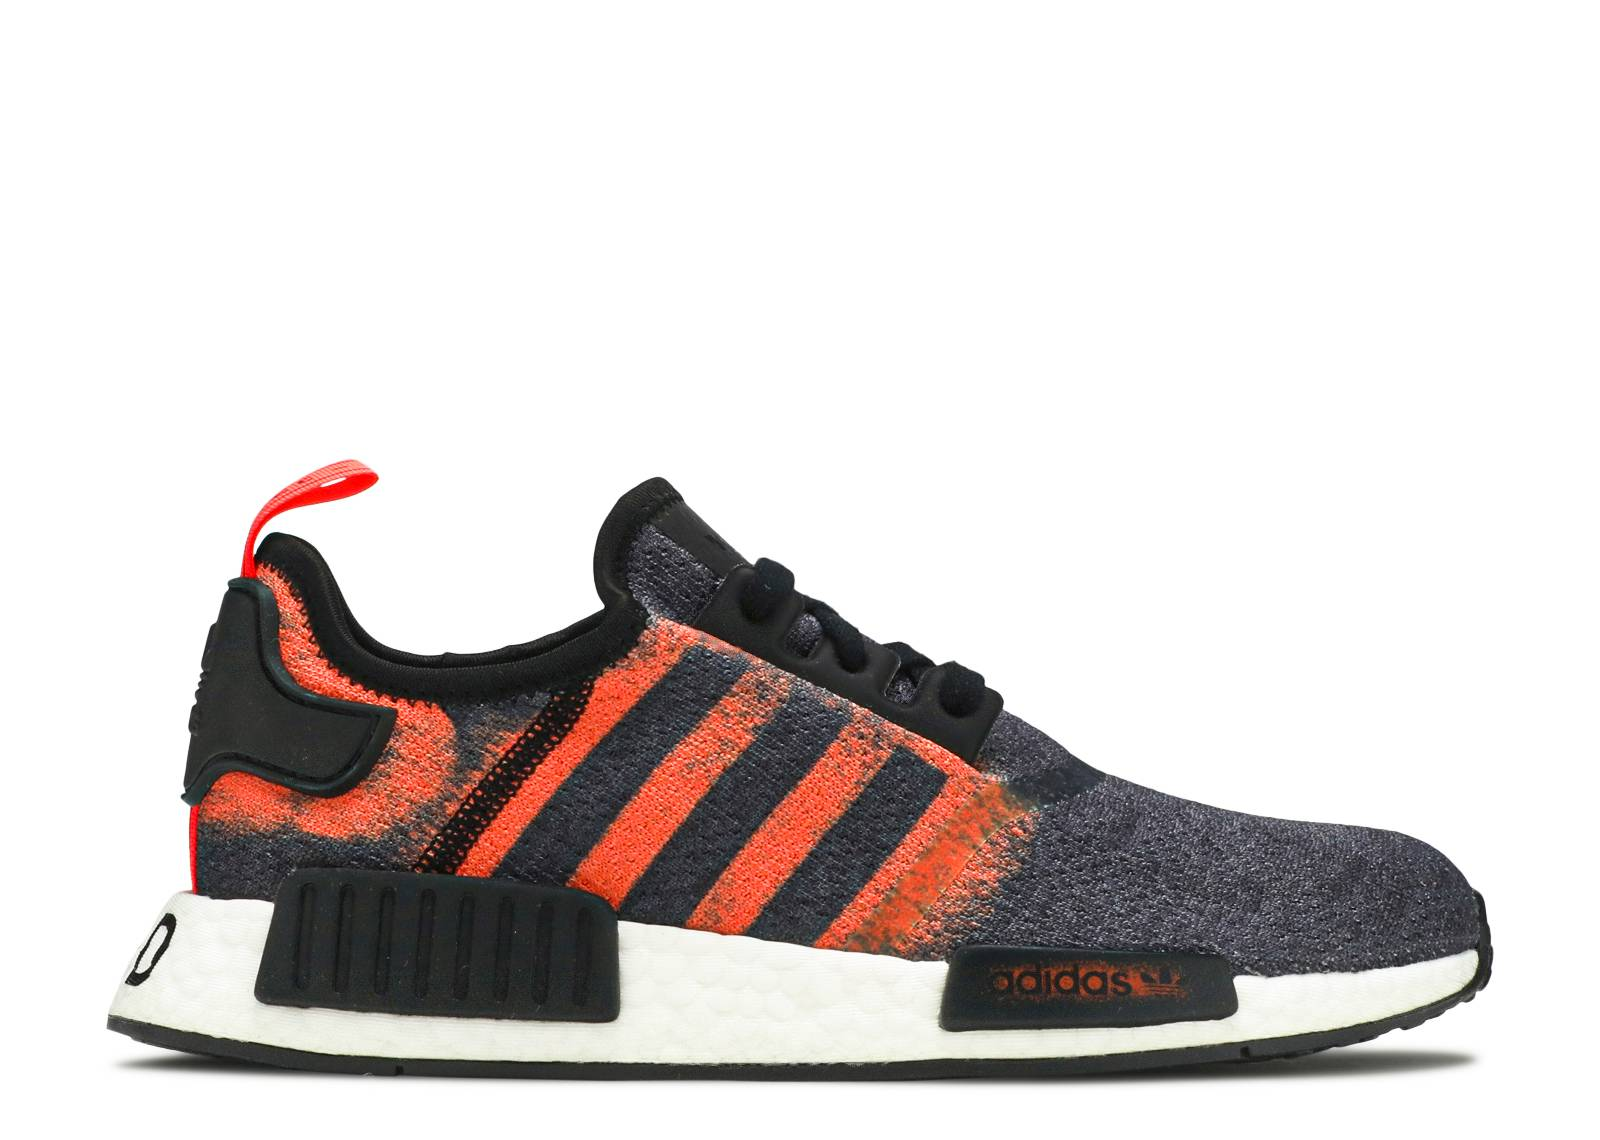 cd8de23ffcf32 Adidas NMD - adidas Originals Men s   Women s Shoes